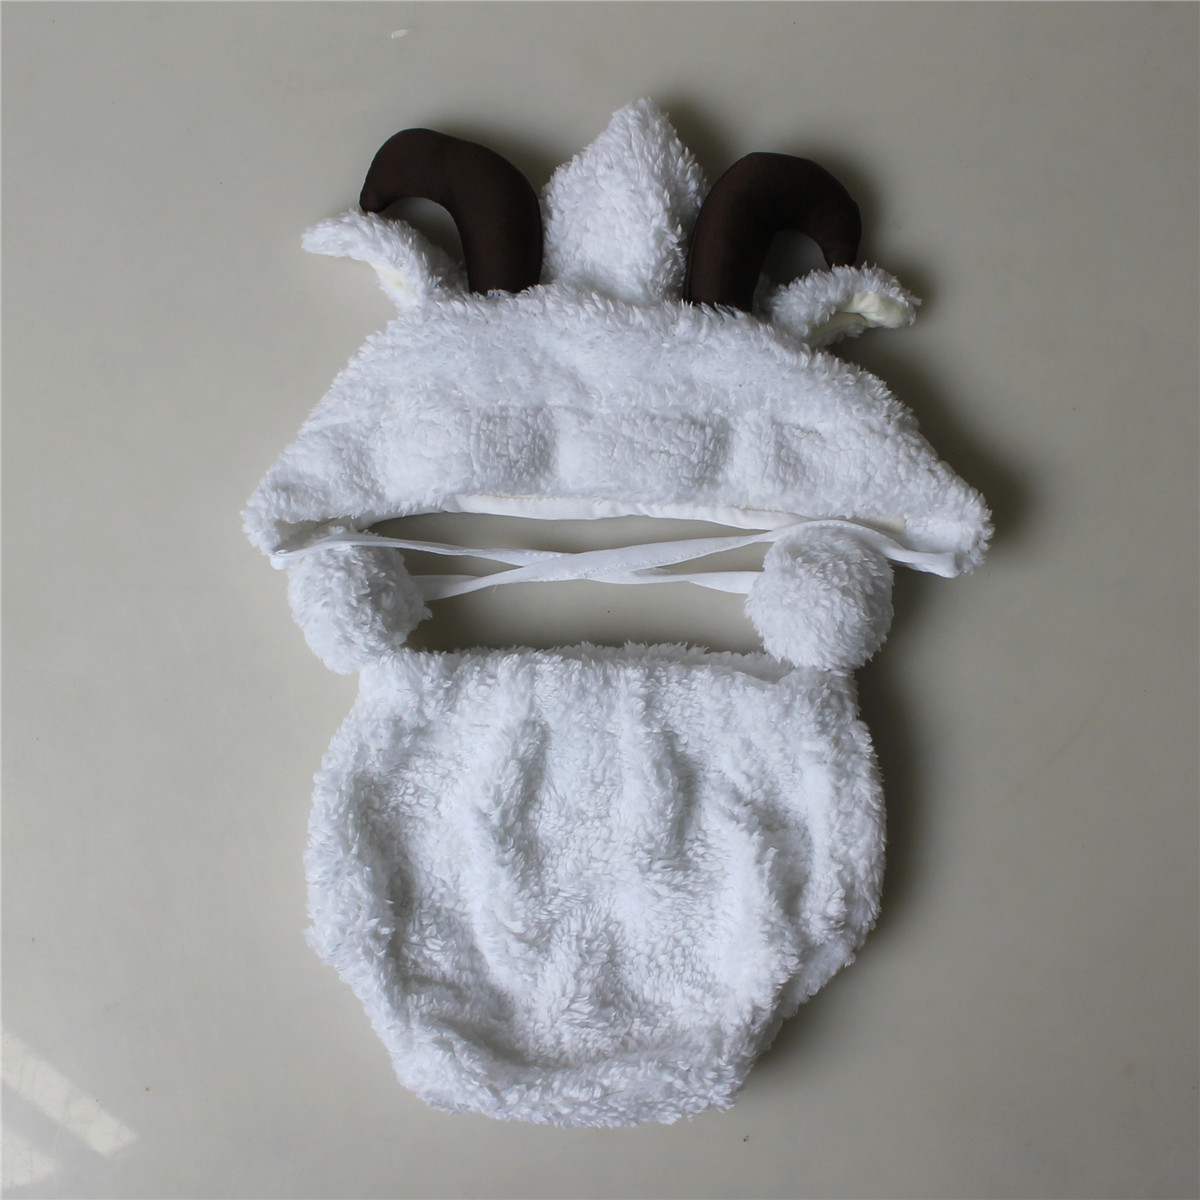 Image 4 - Fashion White Baby Girl Boy Photo Costumes Clothes Newborn Pictures Clothing Animal Sheep Goat Set Outfits    -